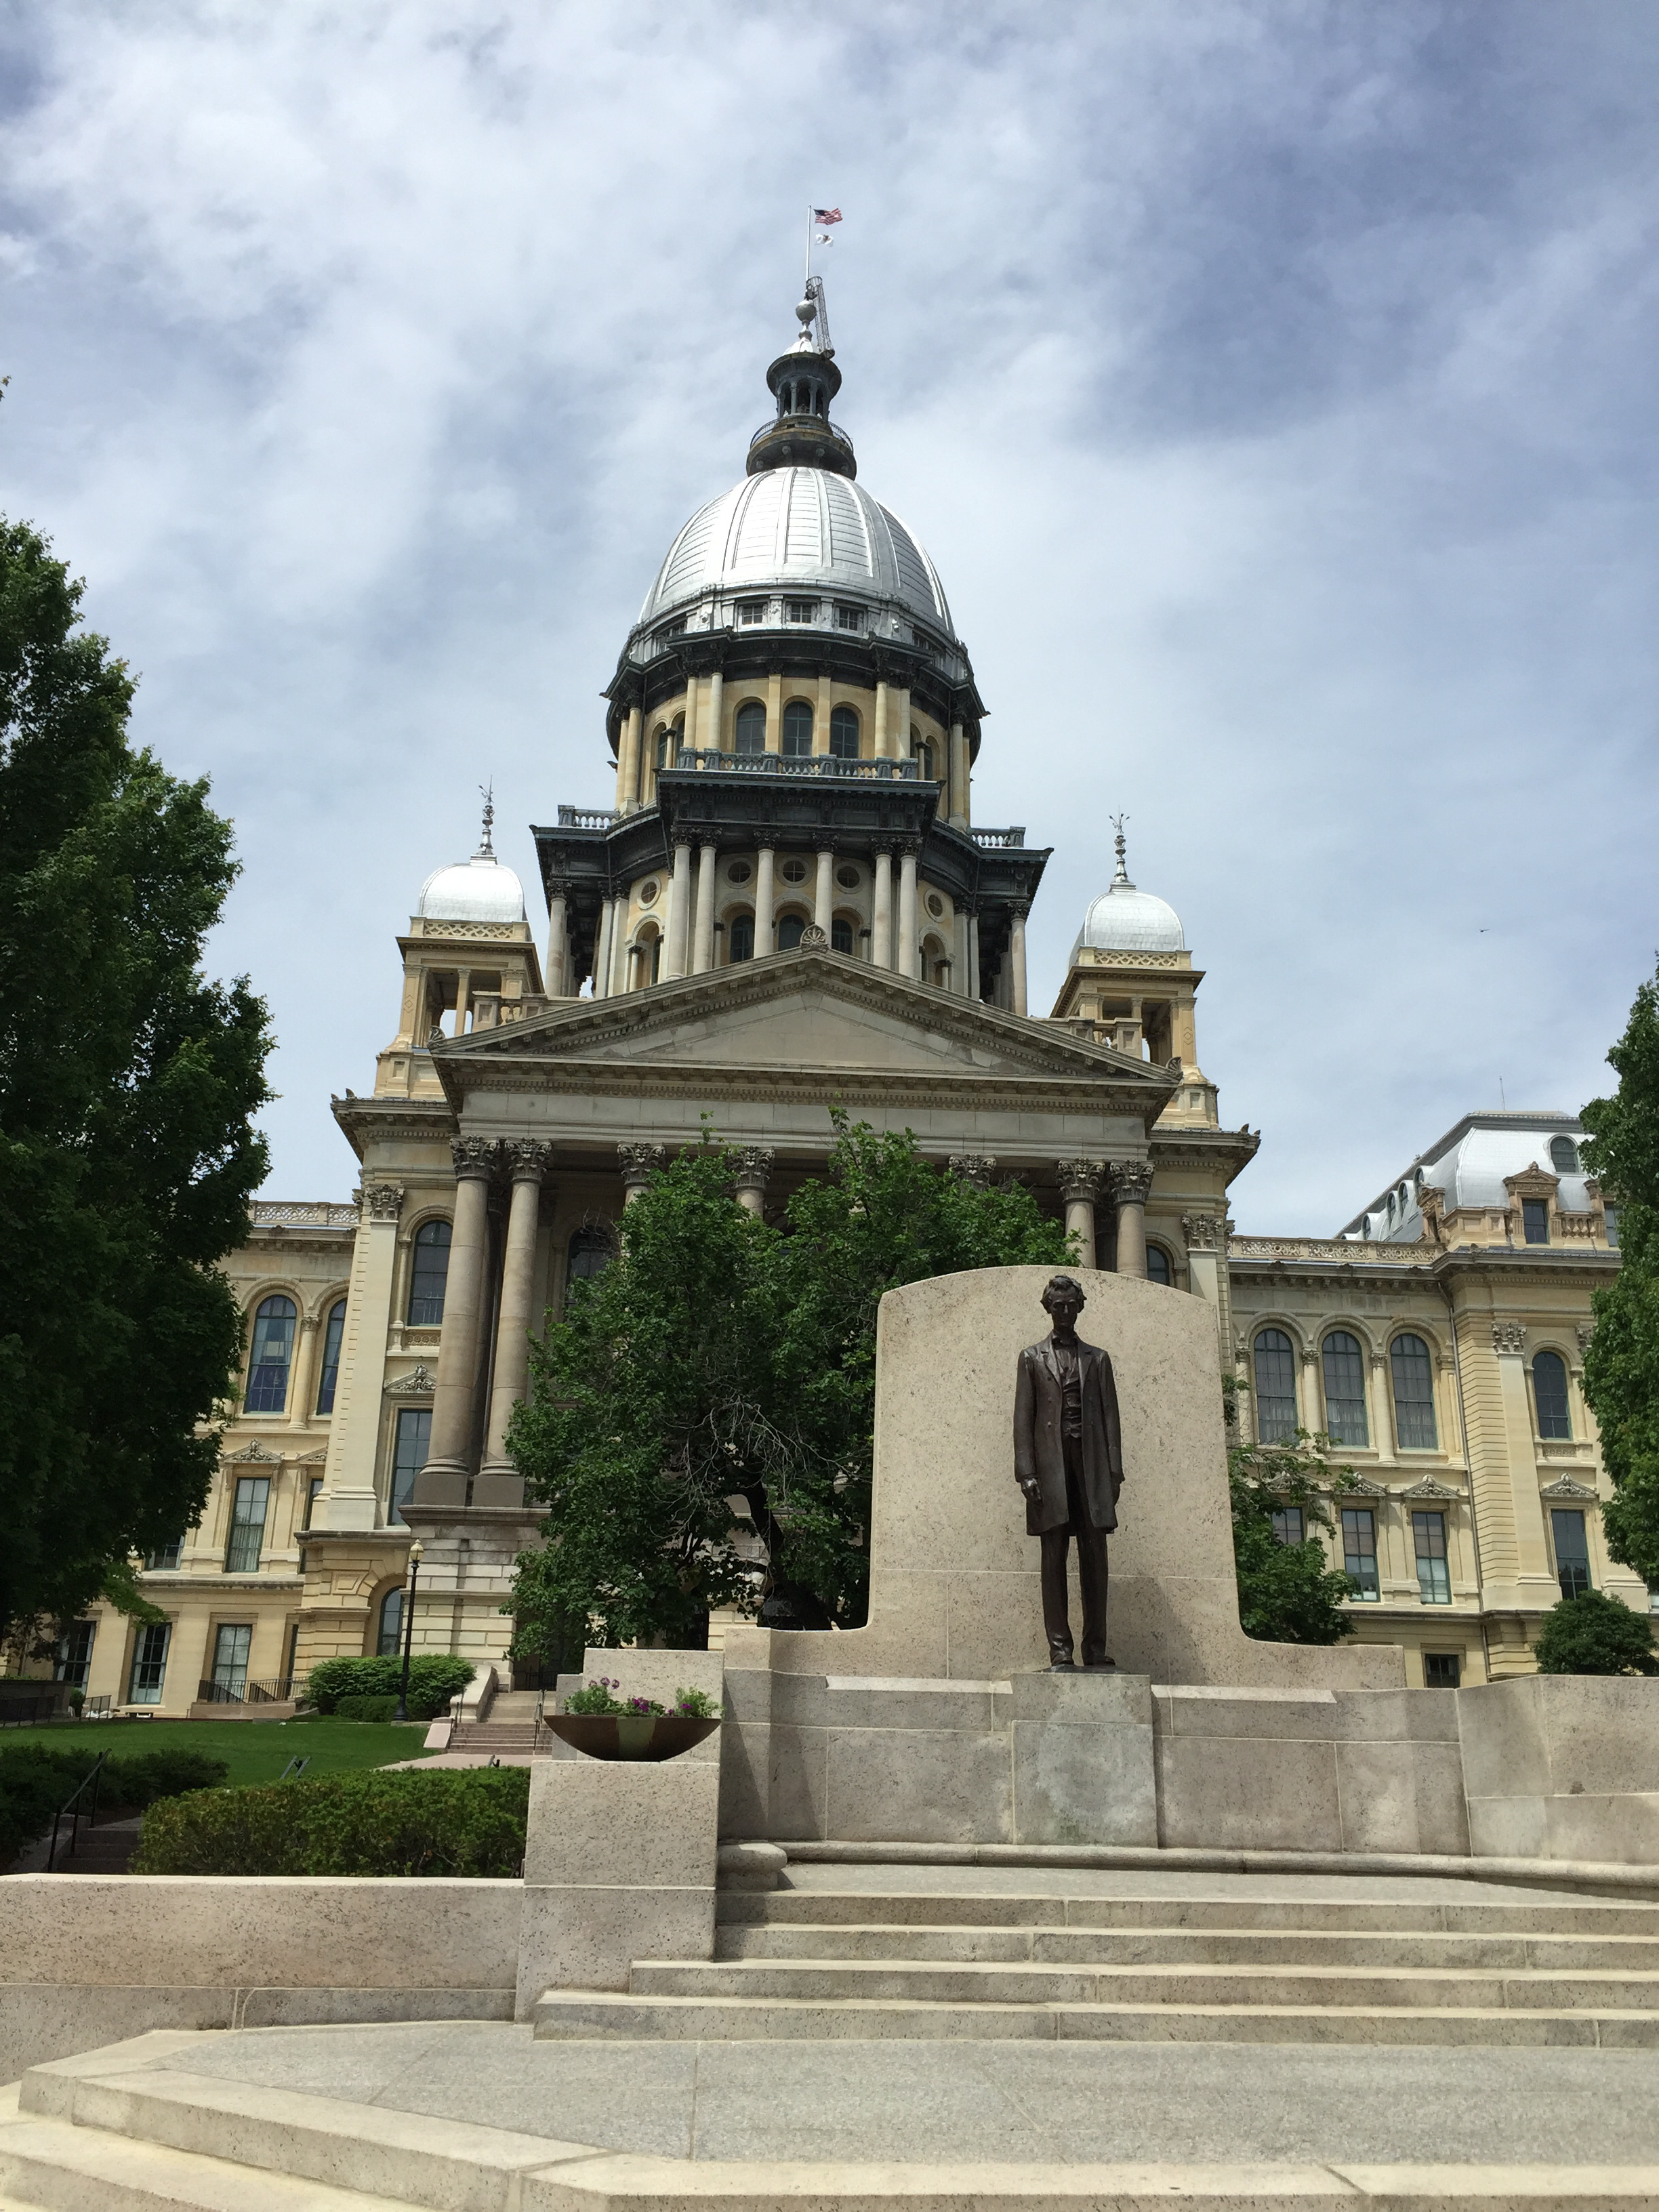 Capitol building in background, statue of Abraham Lincoln in foreground